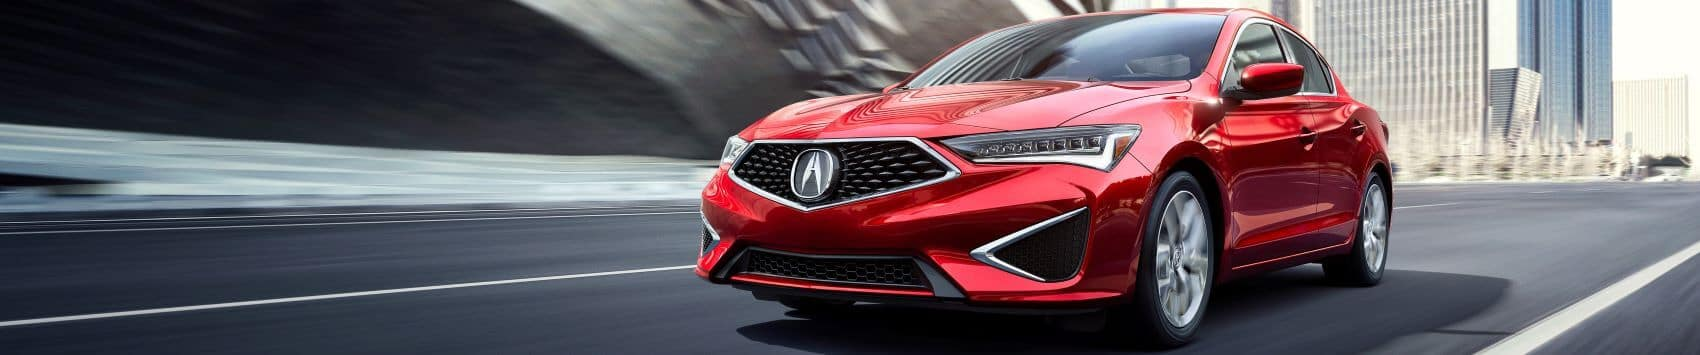 19-21 Acura ILX Performance Red